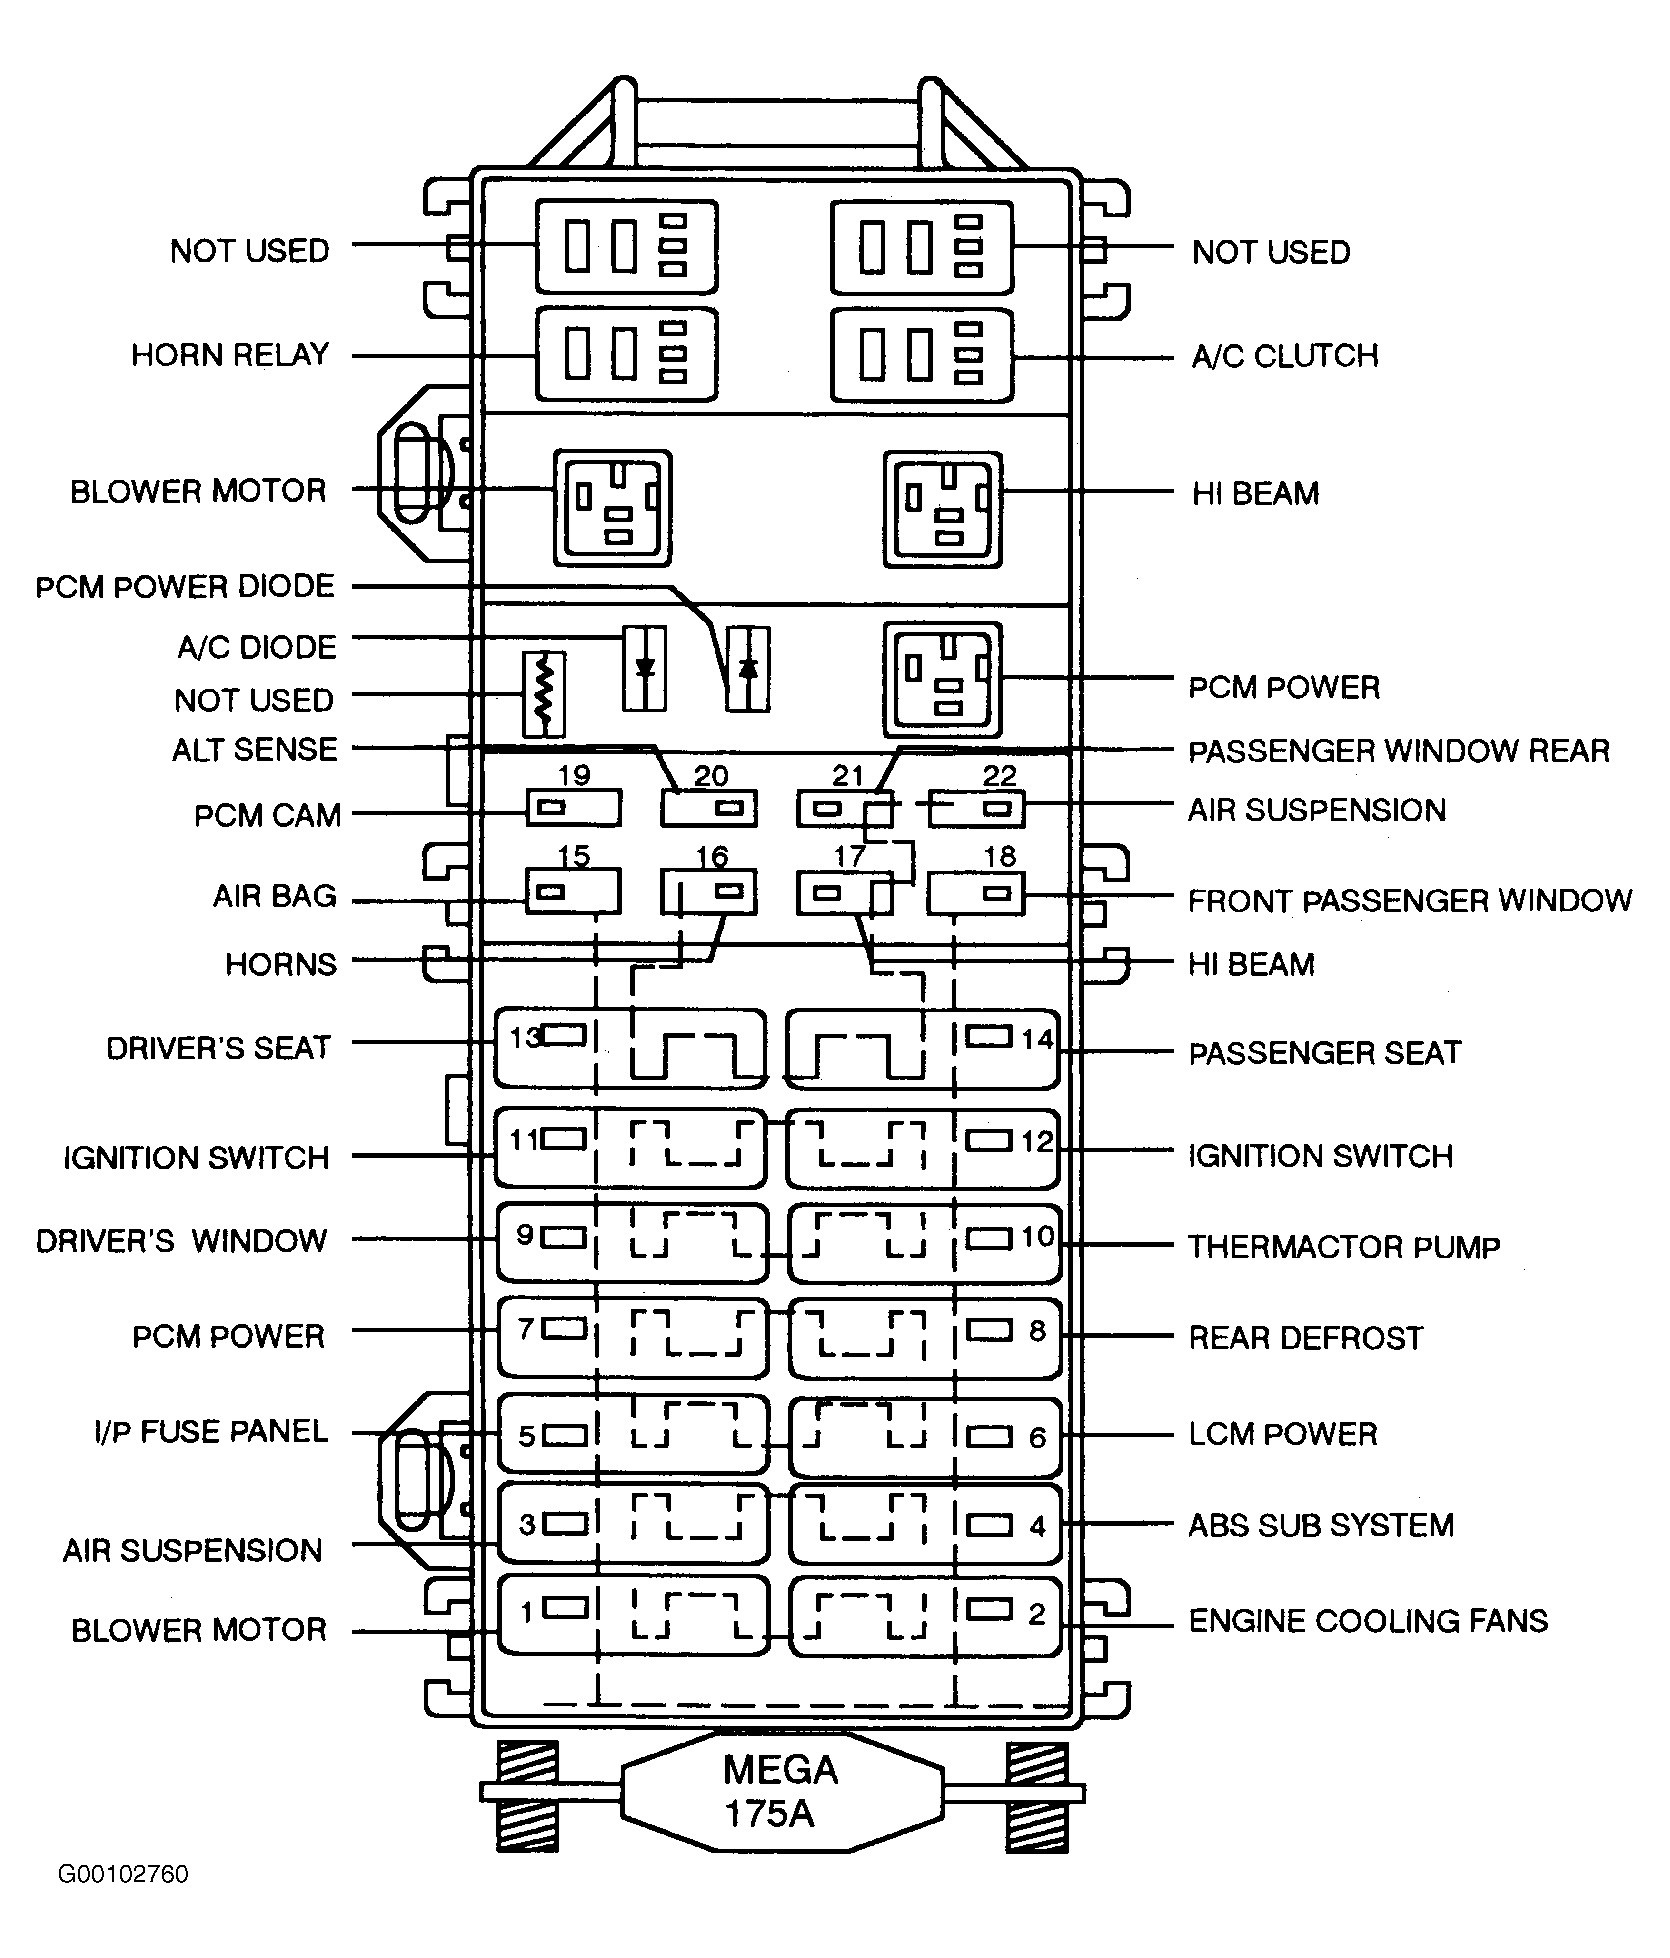 small resolution of e46 320d fuse box diagram wiring library rh 10 dirtytalk camgirls de